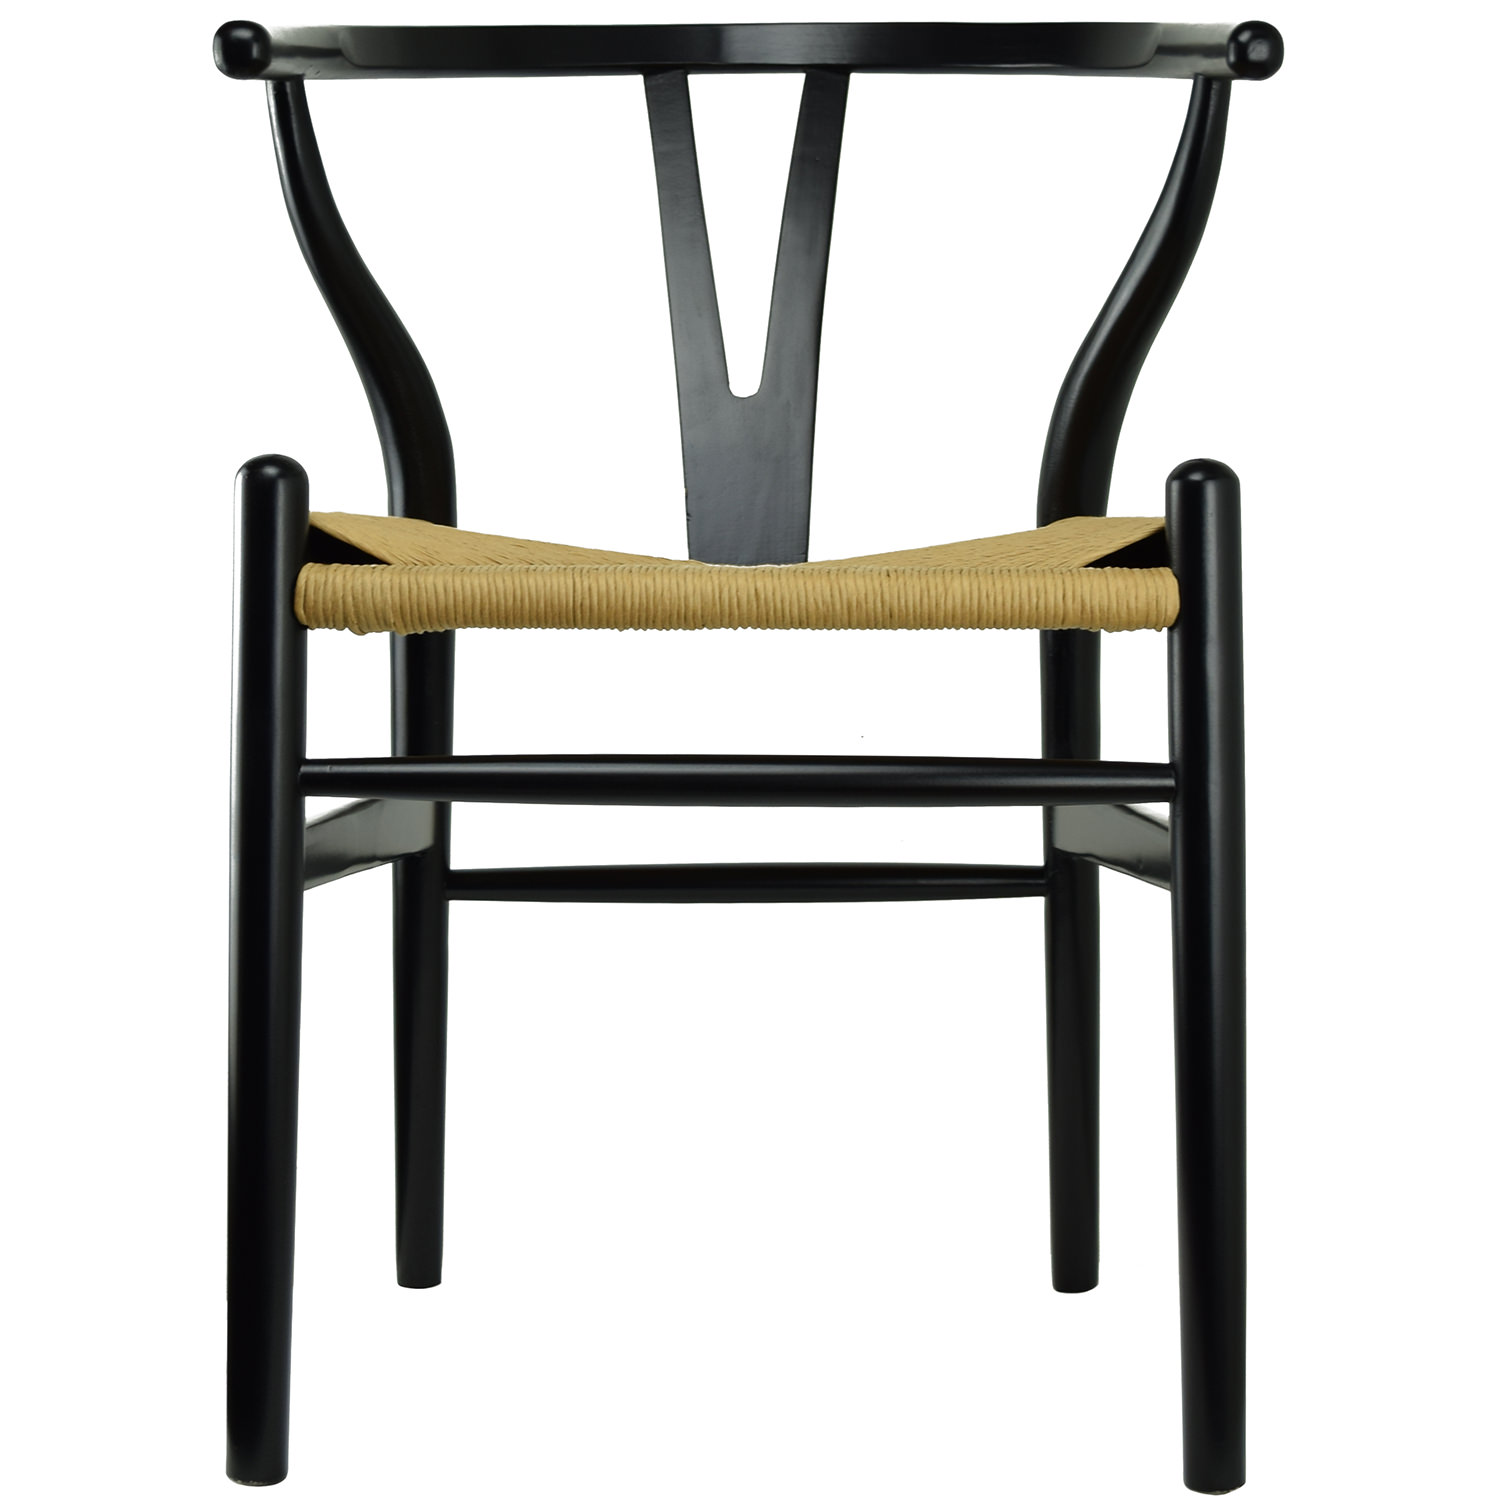 2xhome Black Wishbone Wood Armchair With Arms Open Y Back Open Mid Century Modern Contemporary Assembled Chair Dining Chairs Woven Seat Brown For Kitchen Living Desk Office Guest Work Home Accent